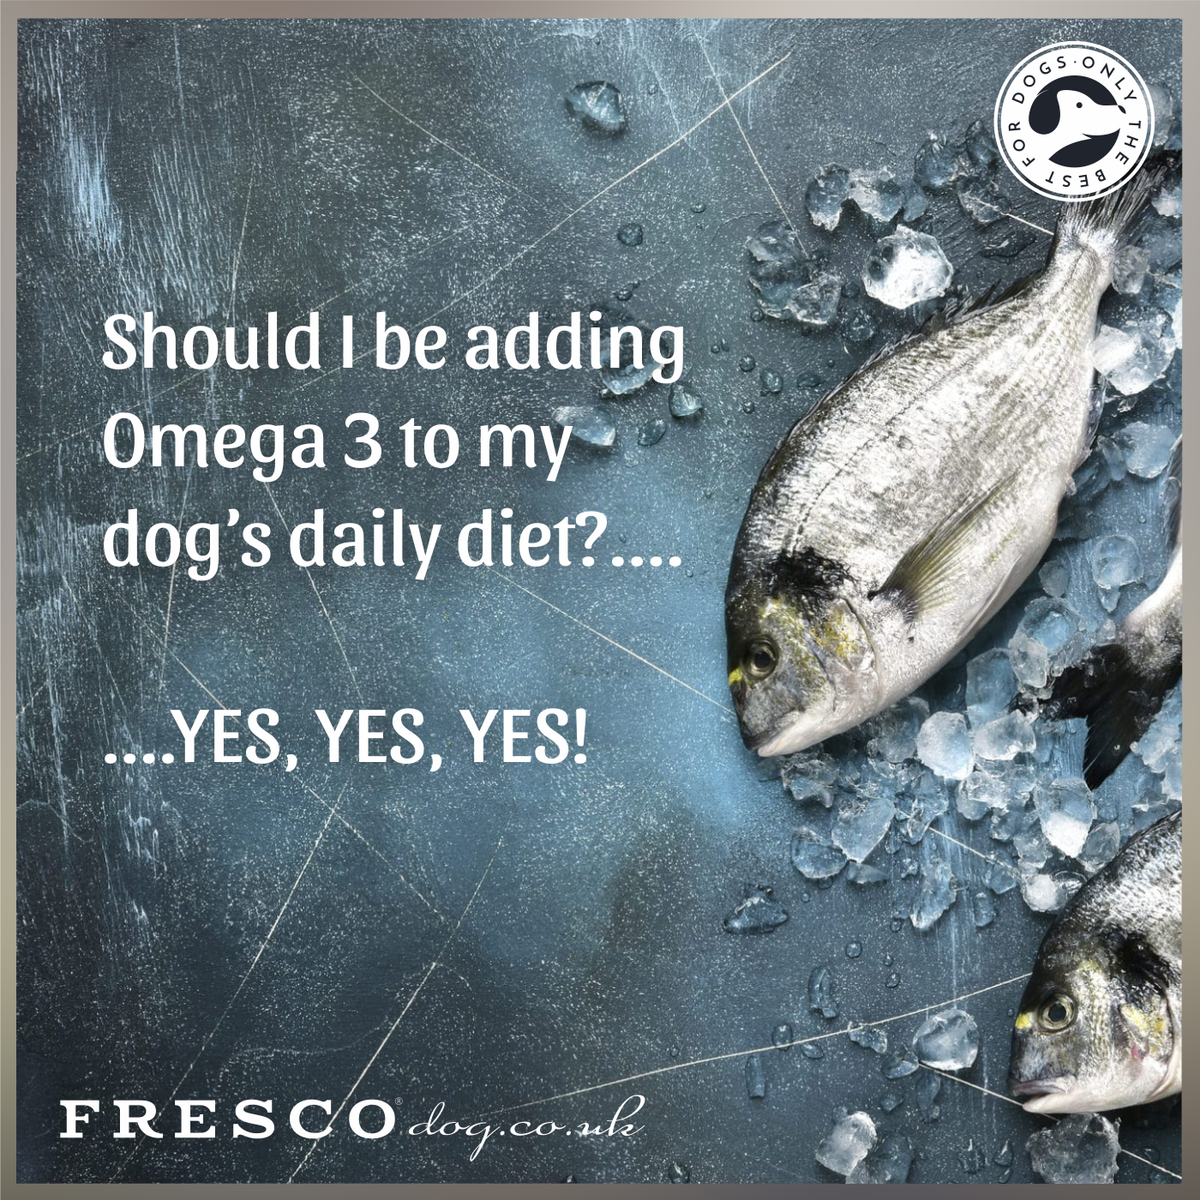 Should I be adding Omega 3 to my dog's diet?